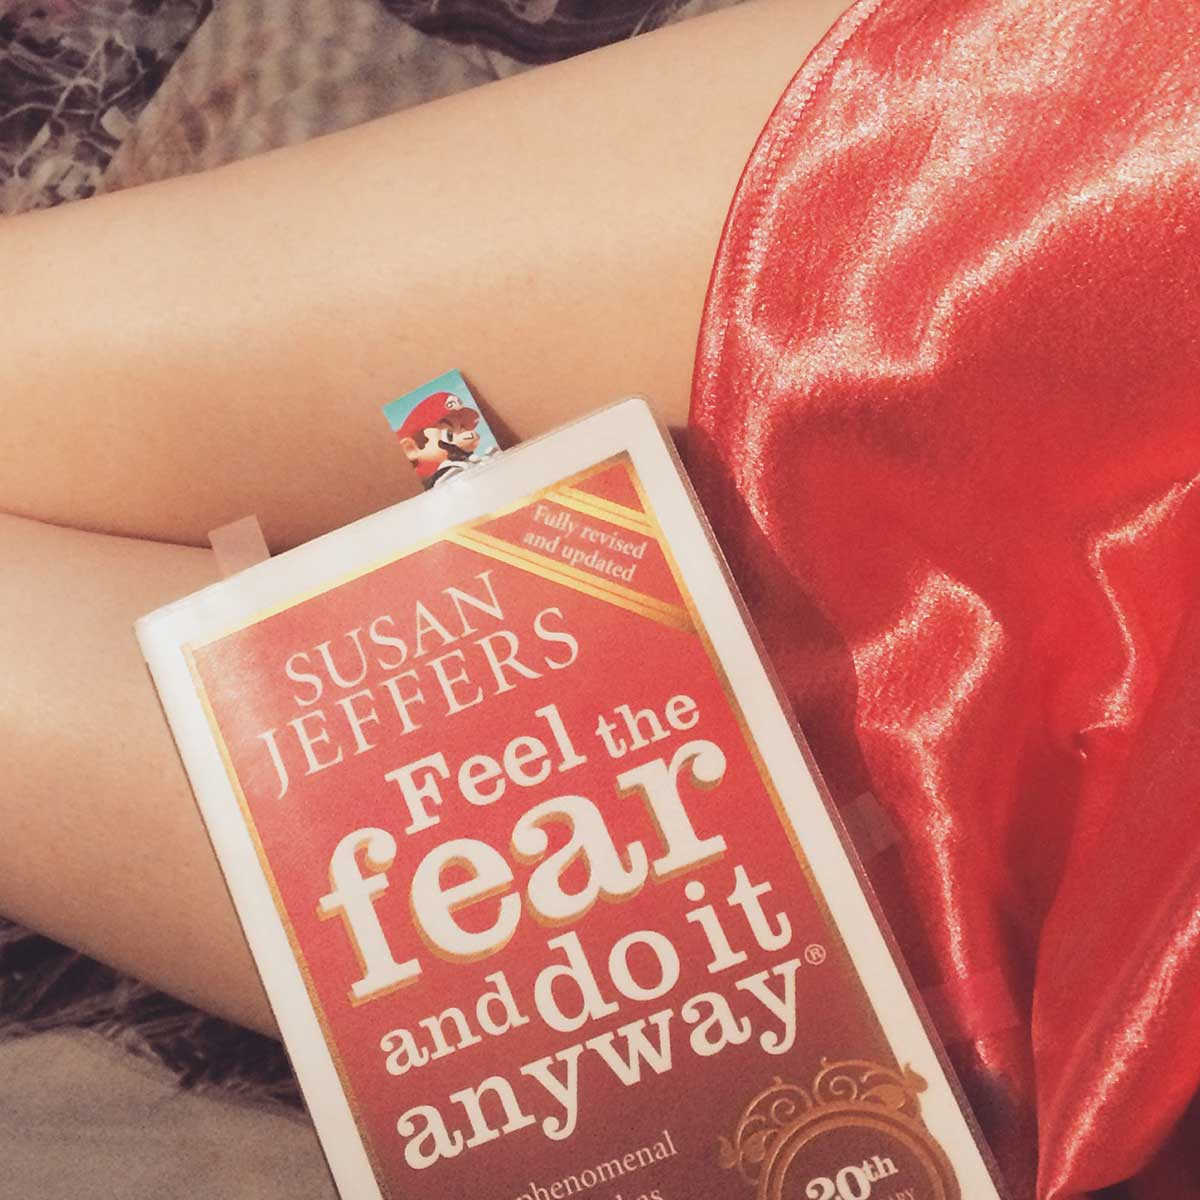 Feel the Fear and do it anyway by susan jeffers - The Mind Lies, with Transgender Model & Artist Sophie Lawson